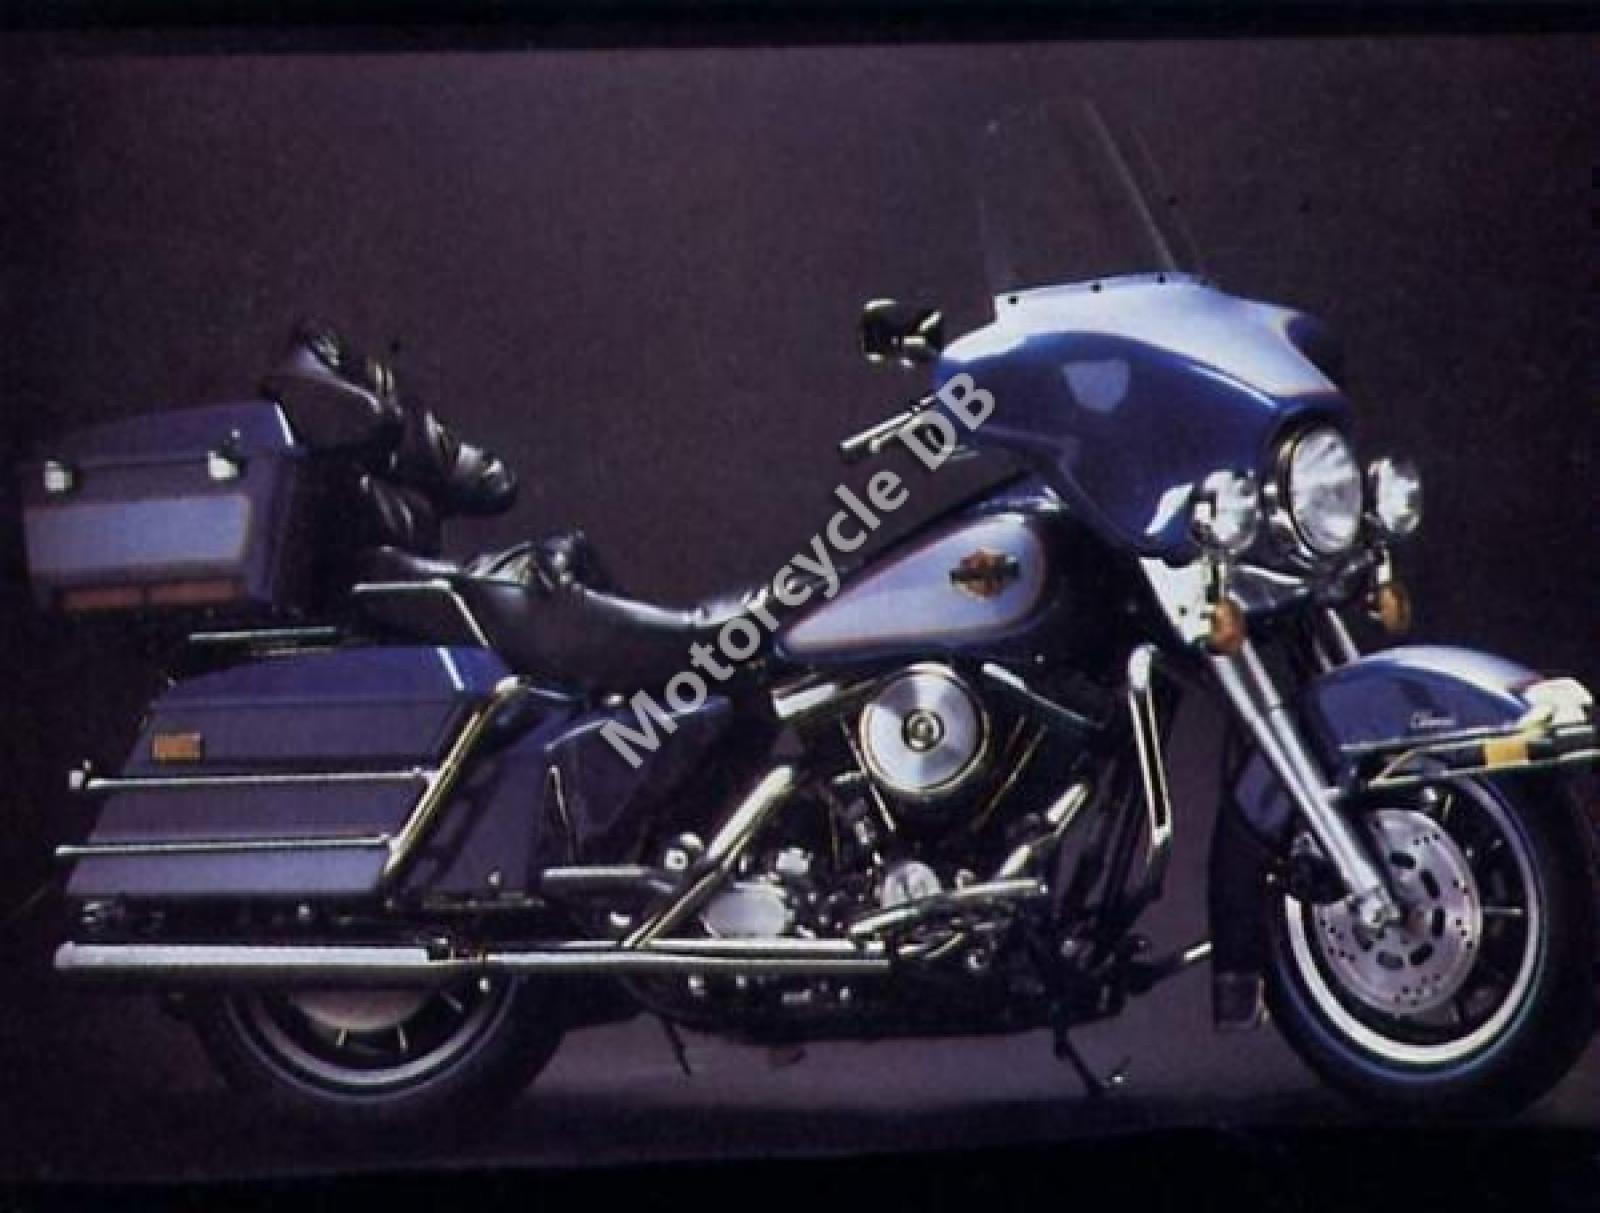 Harley-Davidson FLHTC 1340 Electra Glide Classic 1992 pics #148362